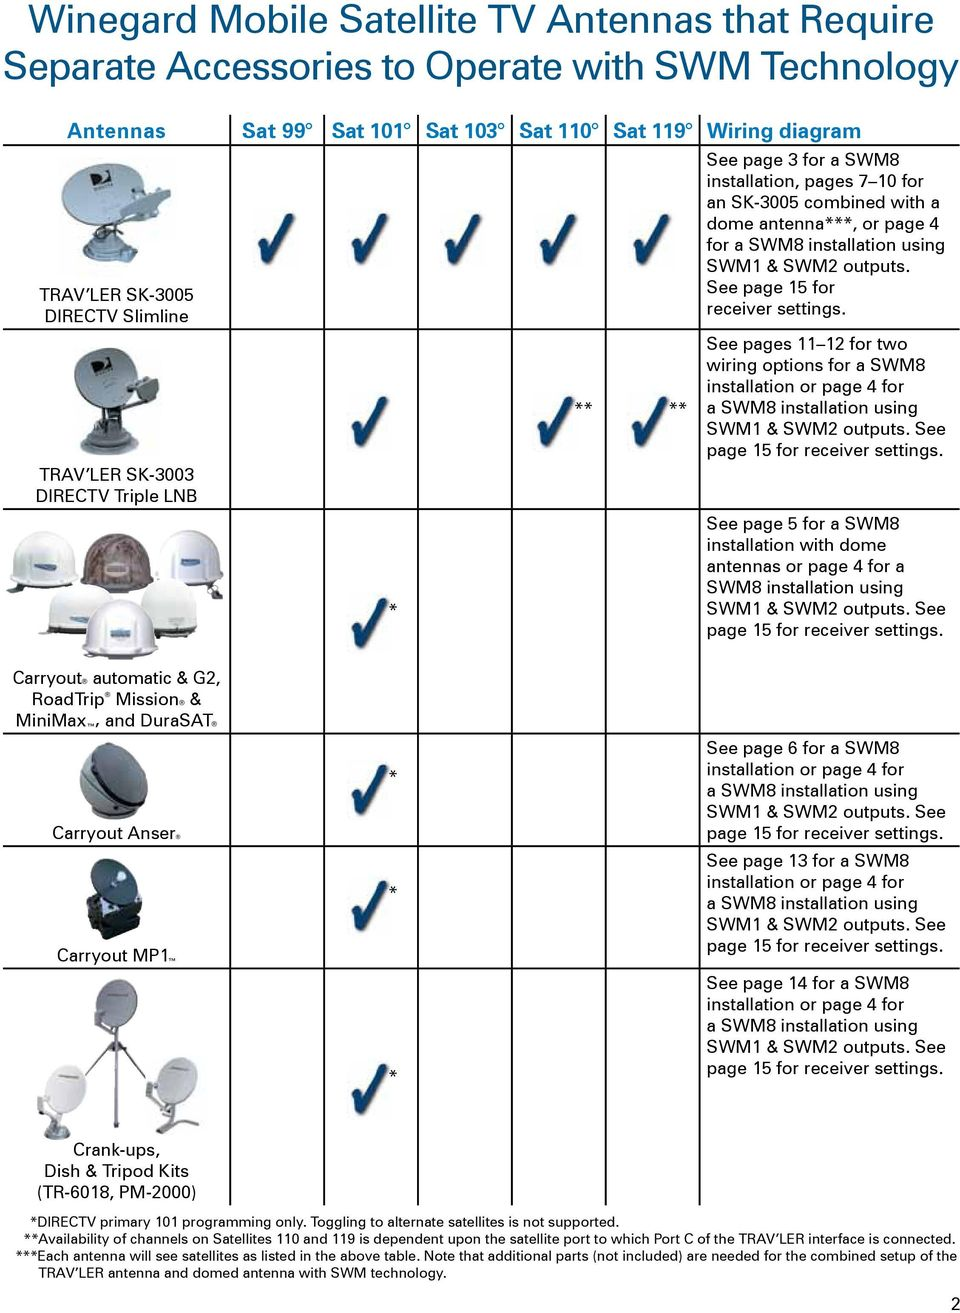 medium resolution of guide for using directv swm technology with winegard mobile winegard carryout wiring diagram